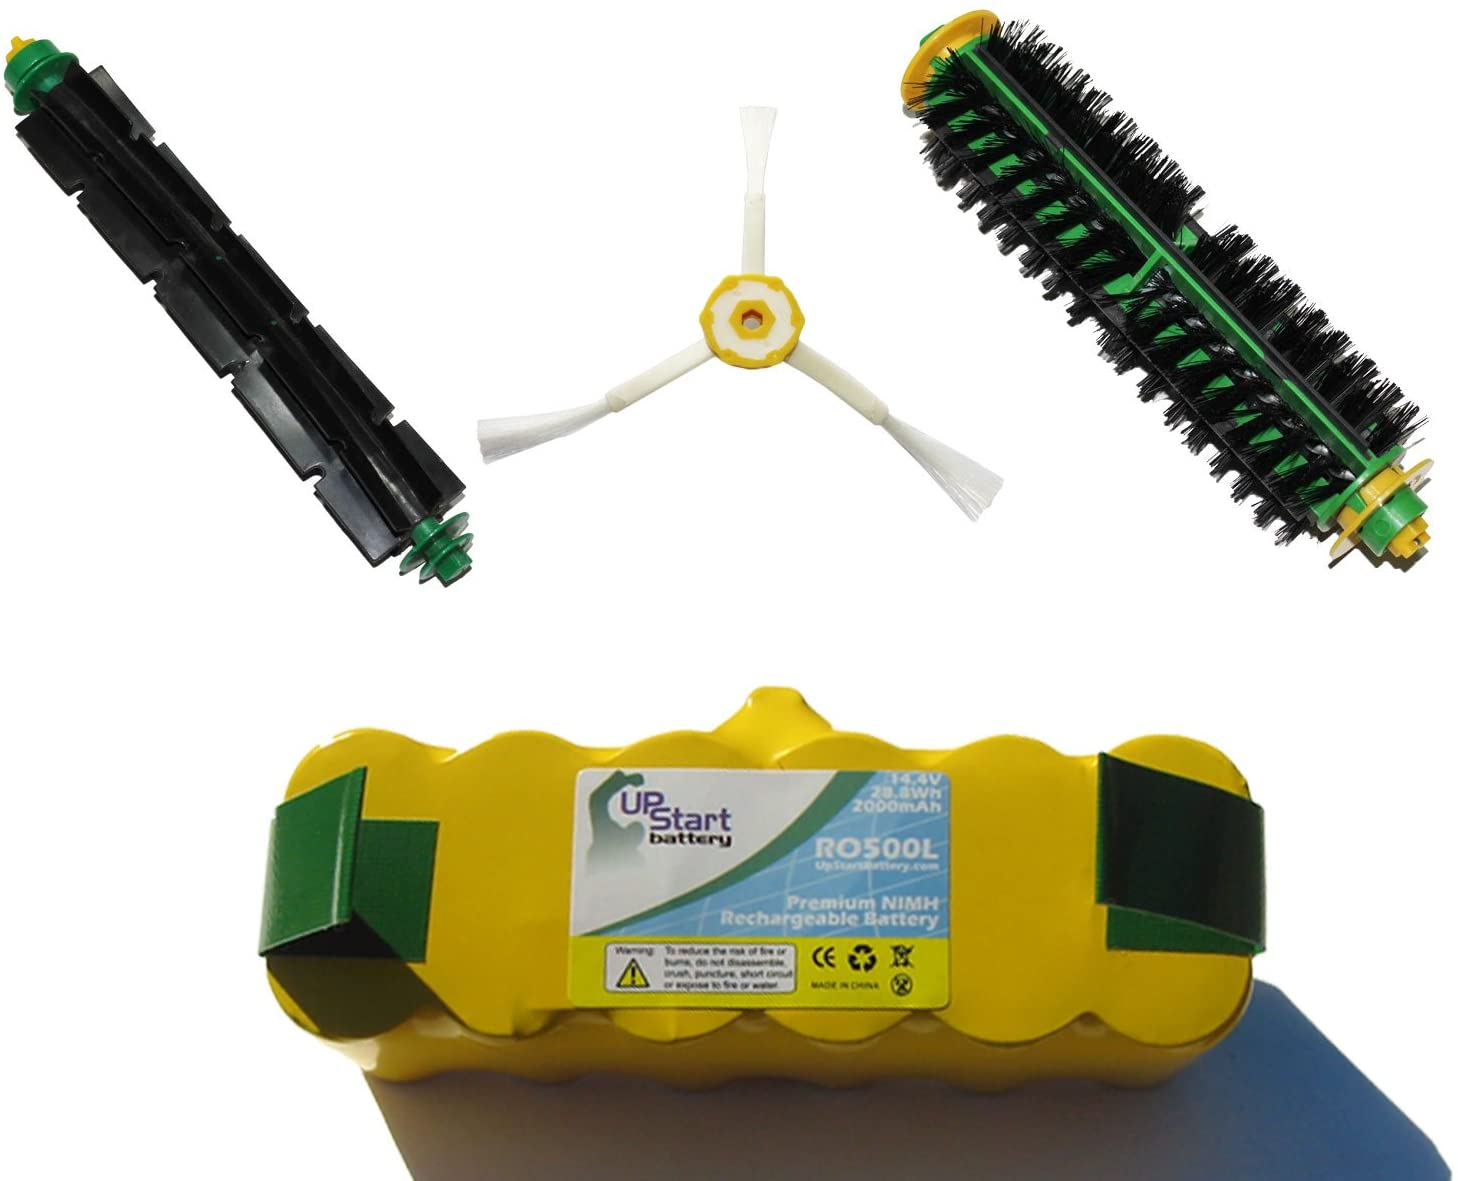 Replacement for iRobot Roomba 563 Battery, Bristle Brush and Flexible Beater Brush, 3-Arm Side Brush - Kit Includes 1 Battery, 1 Bristle Brush and 1 Flexible Beater Brush, 1 3-Arm Side Brush